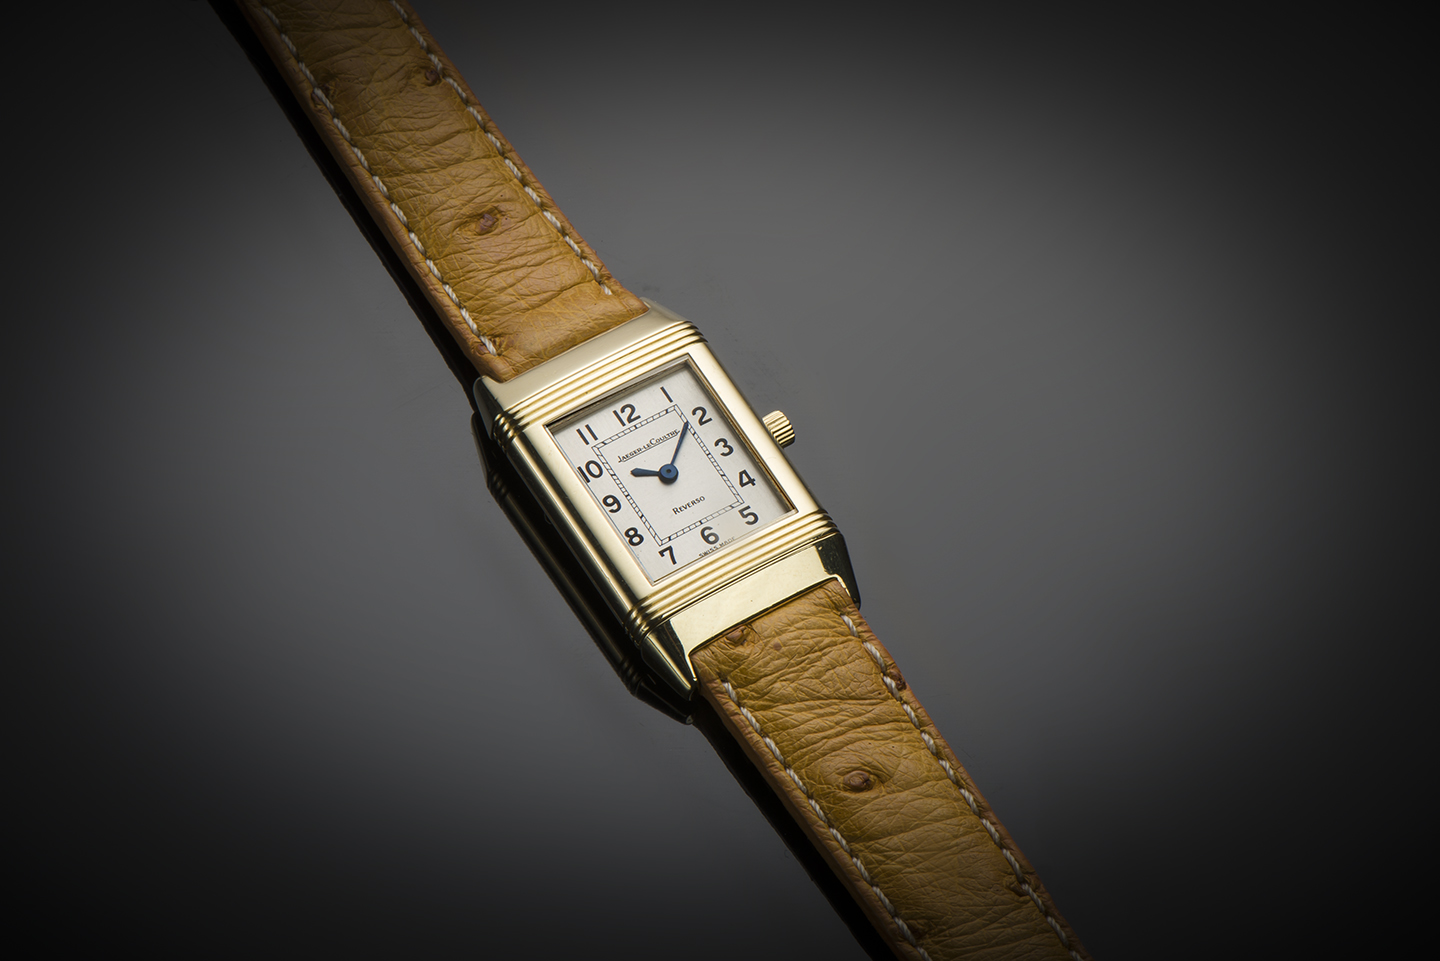 Montre Jaeger-LeCoultre Reverso lady or-1